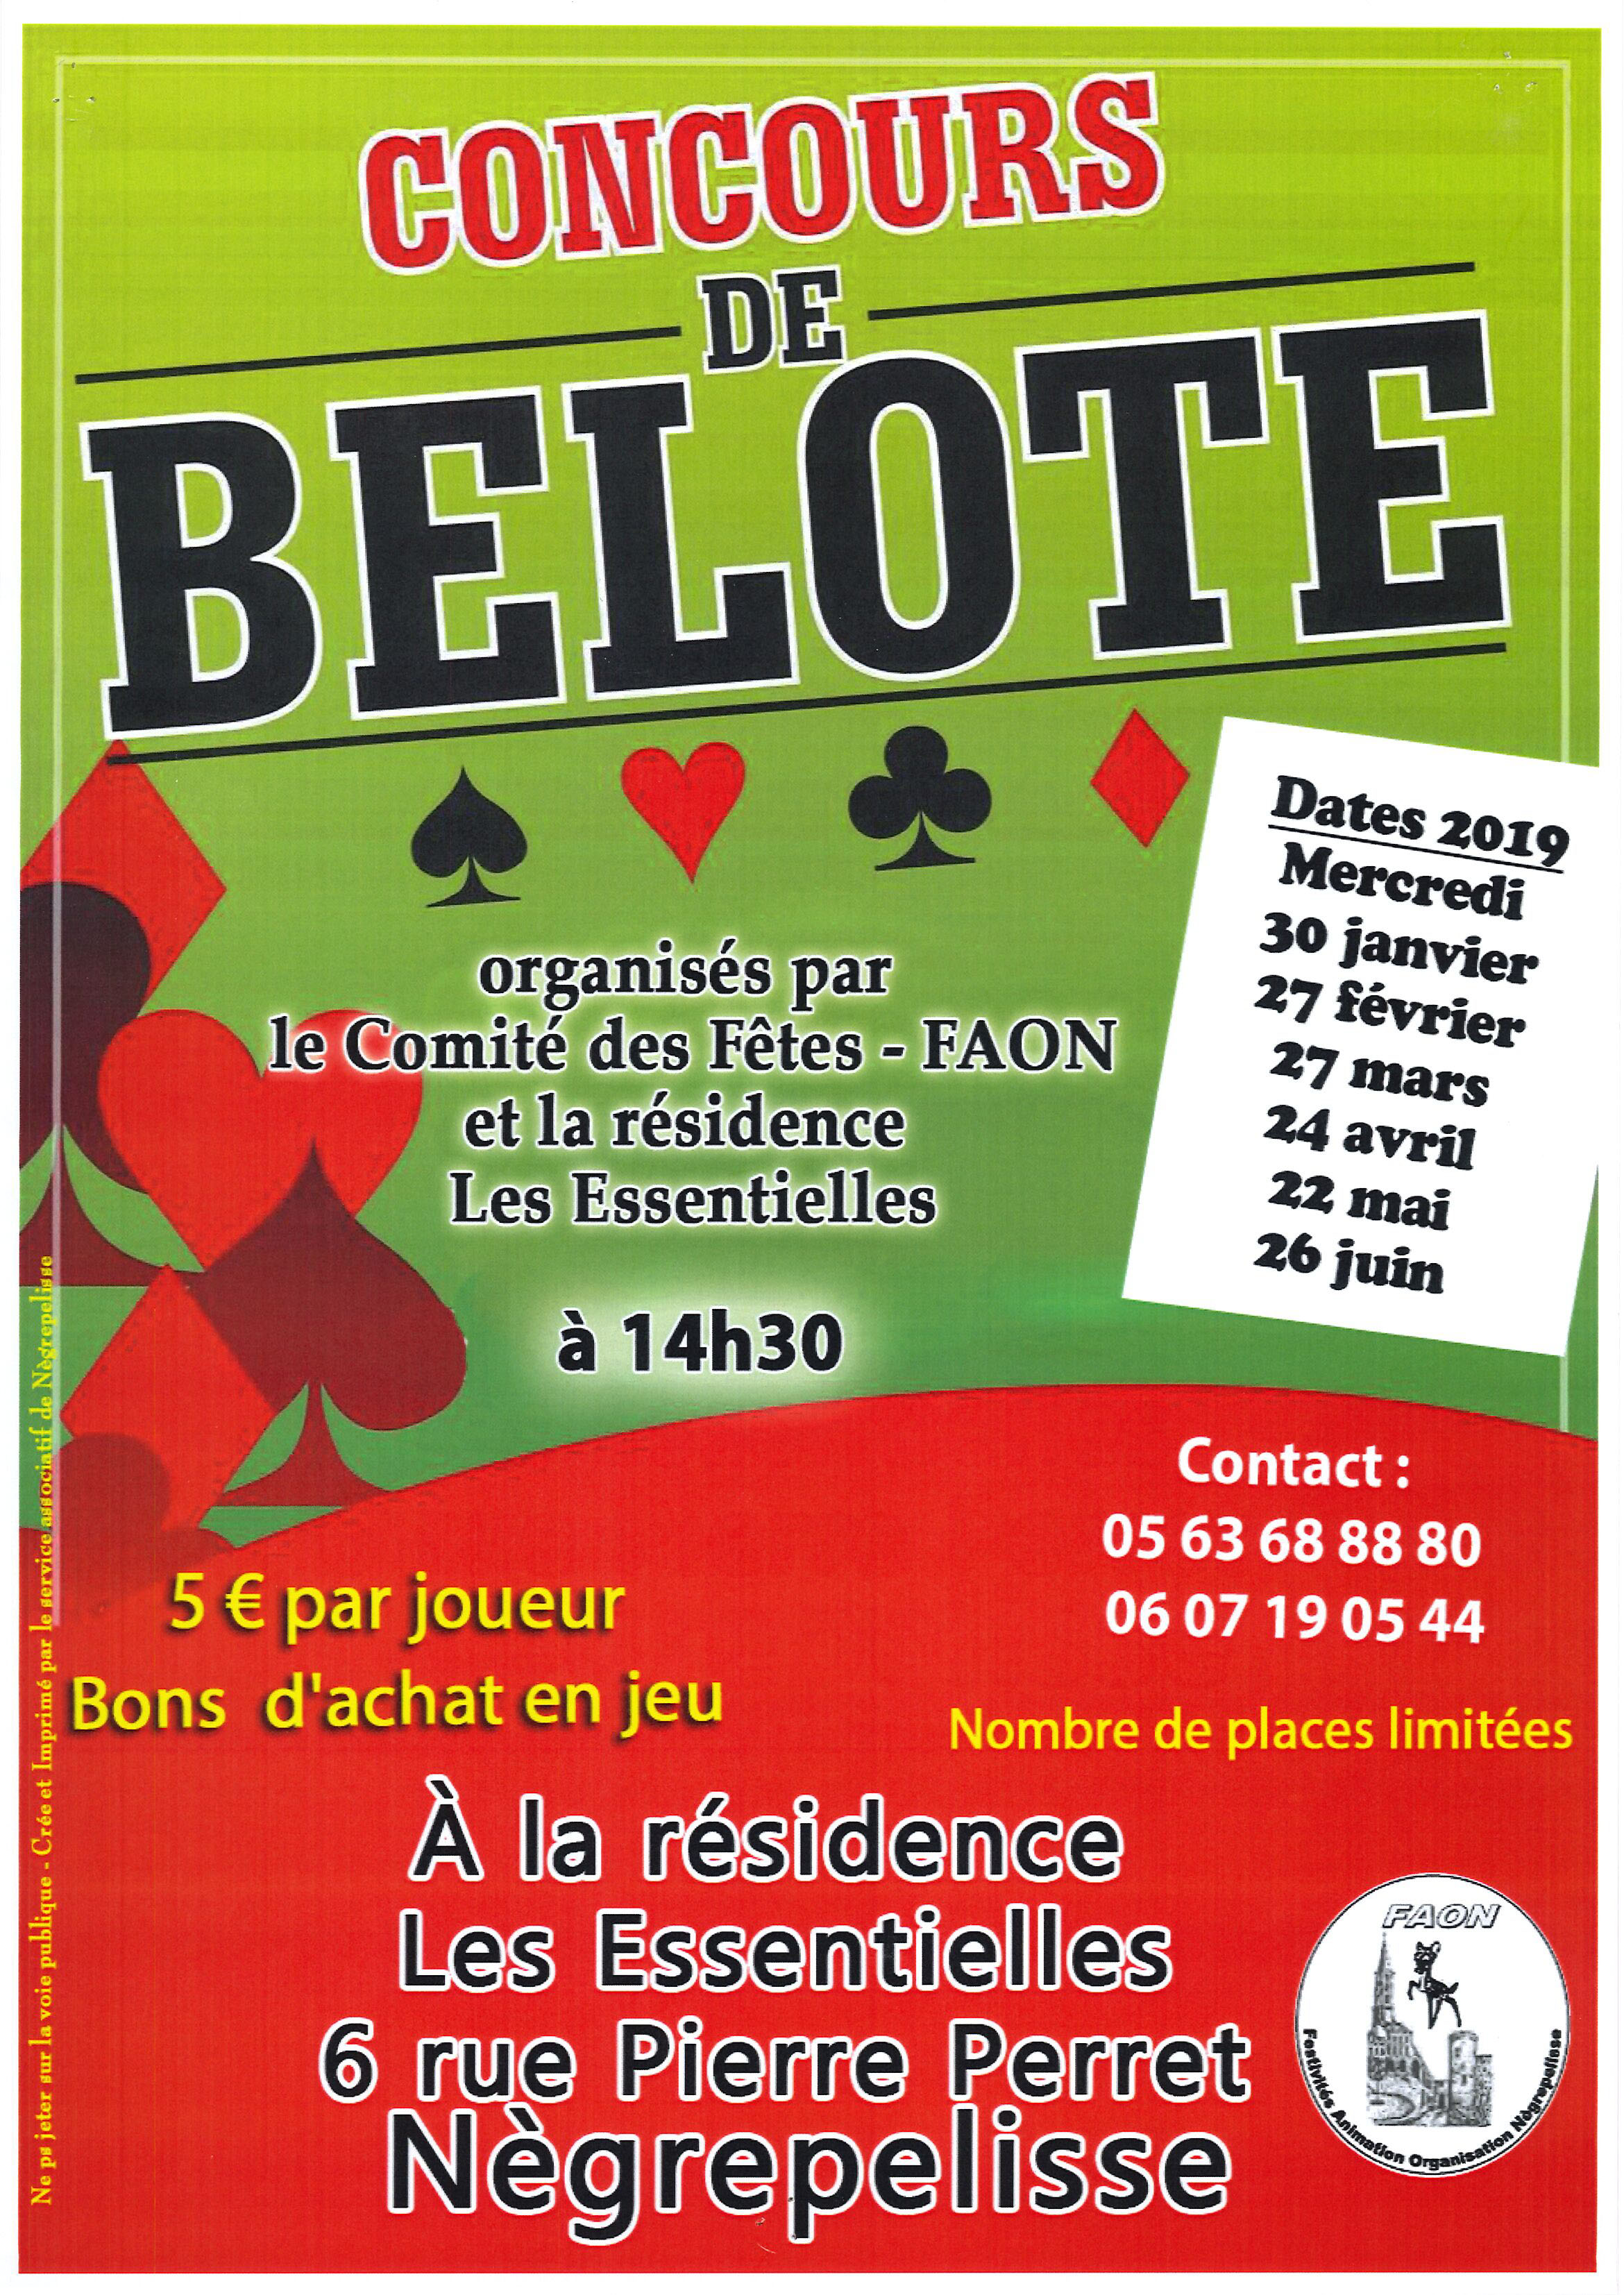 Concours belote FAON 24 AVRIL